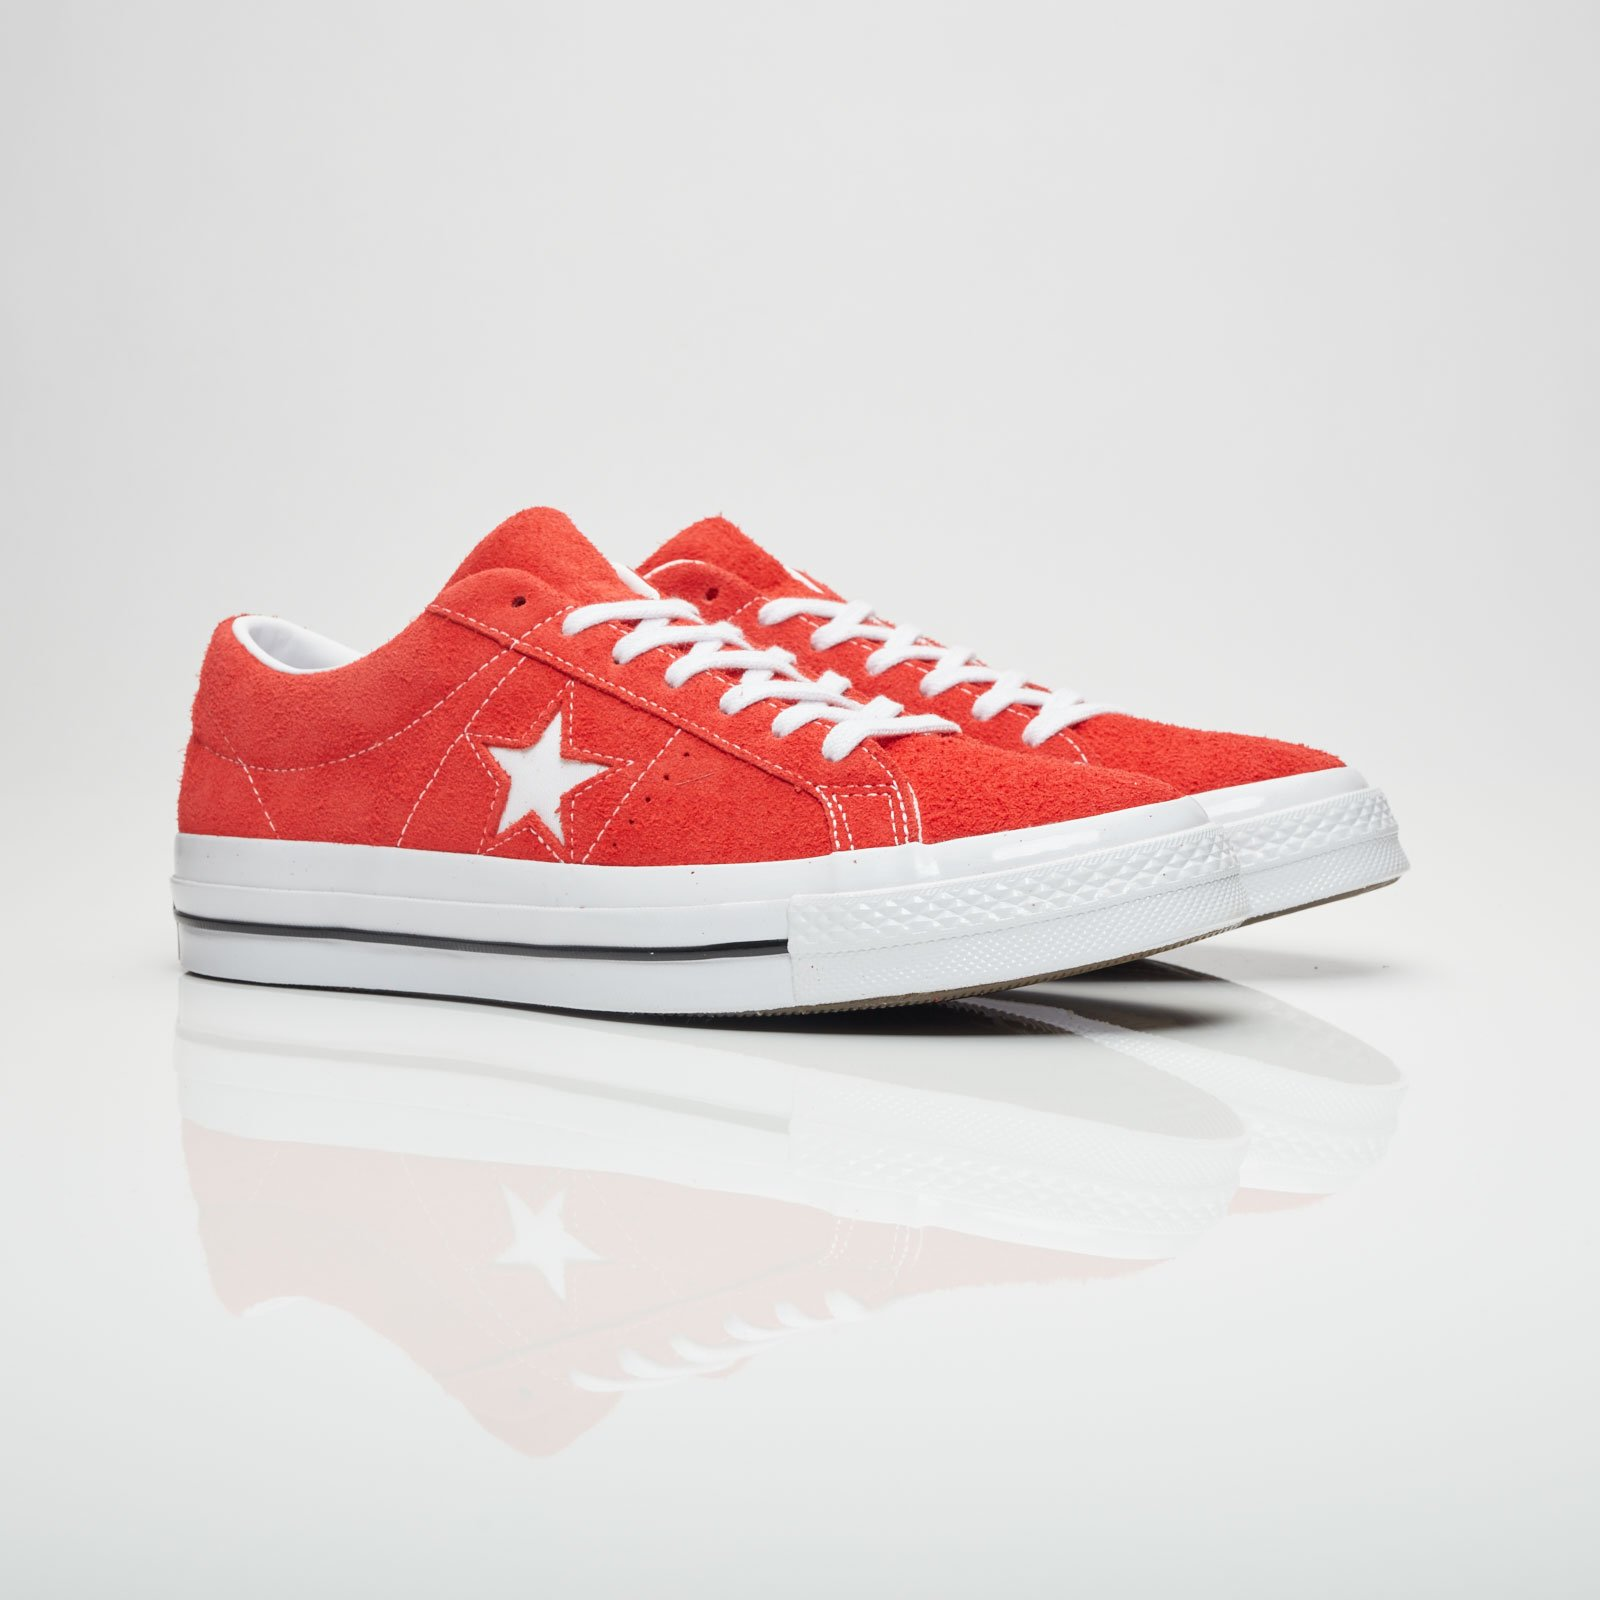 c6300a2cf471 Converse One Star OX - 158434c - Sneakersnstuff